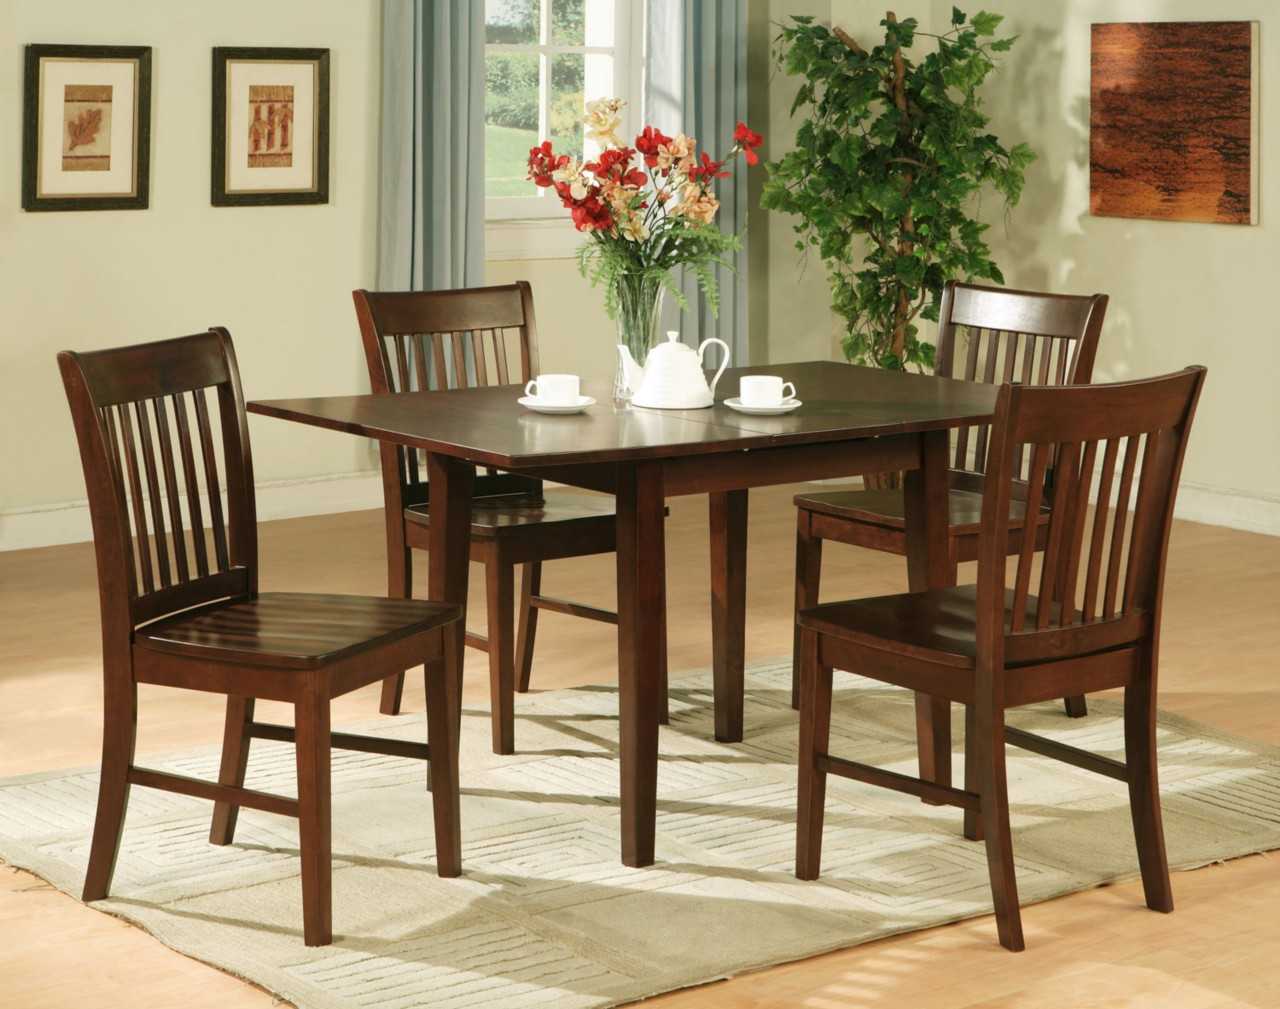 5pc rectangular kitchen dinette table 4 chairs mahogany ebay for Kitchen table with 4 chairs